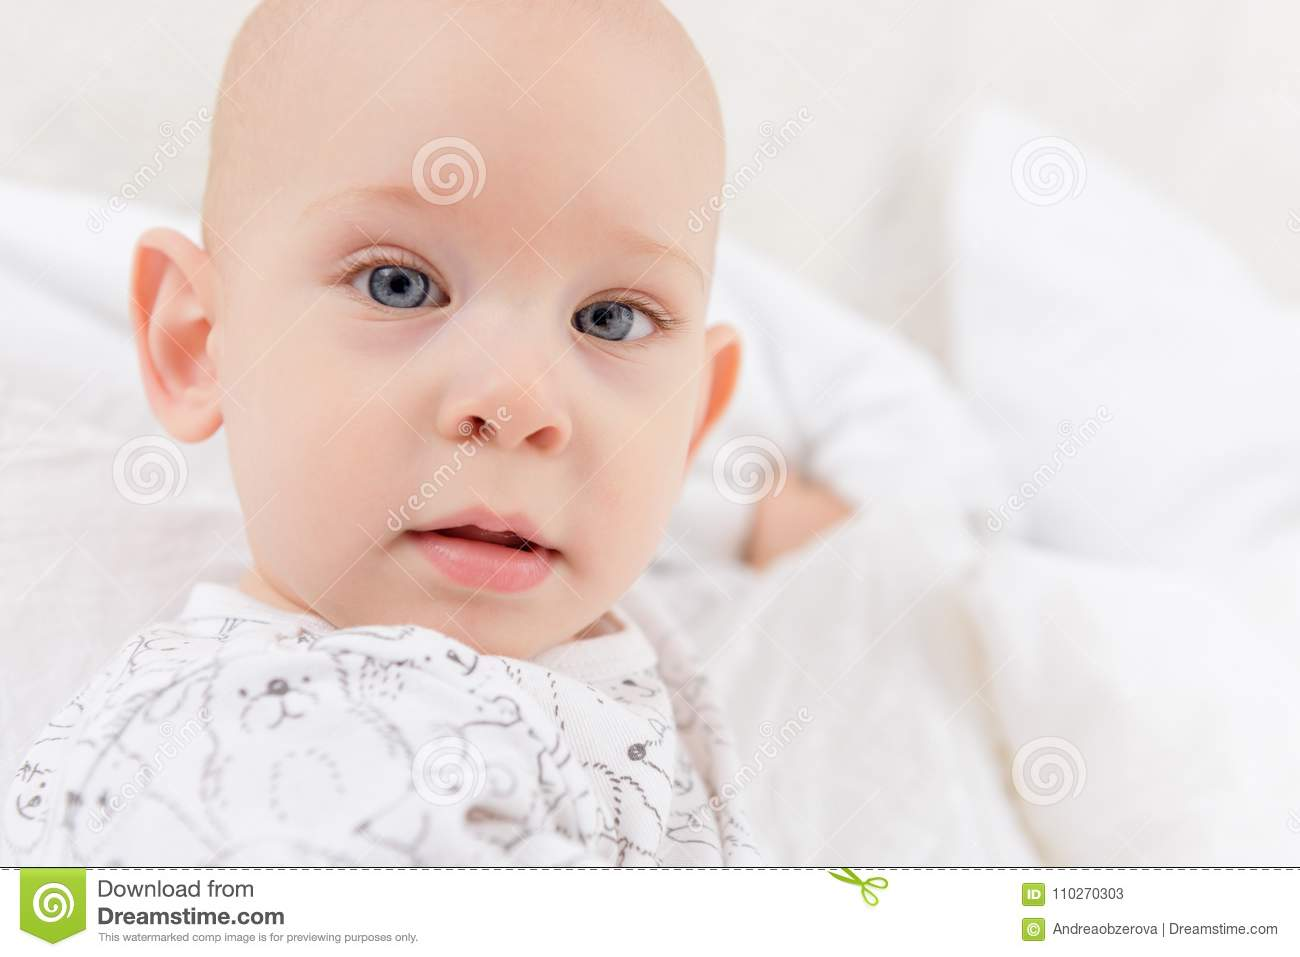 Adorable baby boy with blue eyes looking directly at camera trying to reach for it. Cute toddler close up.